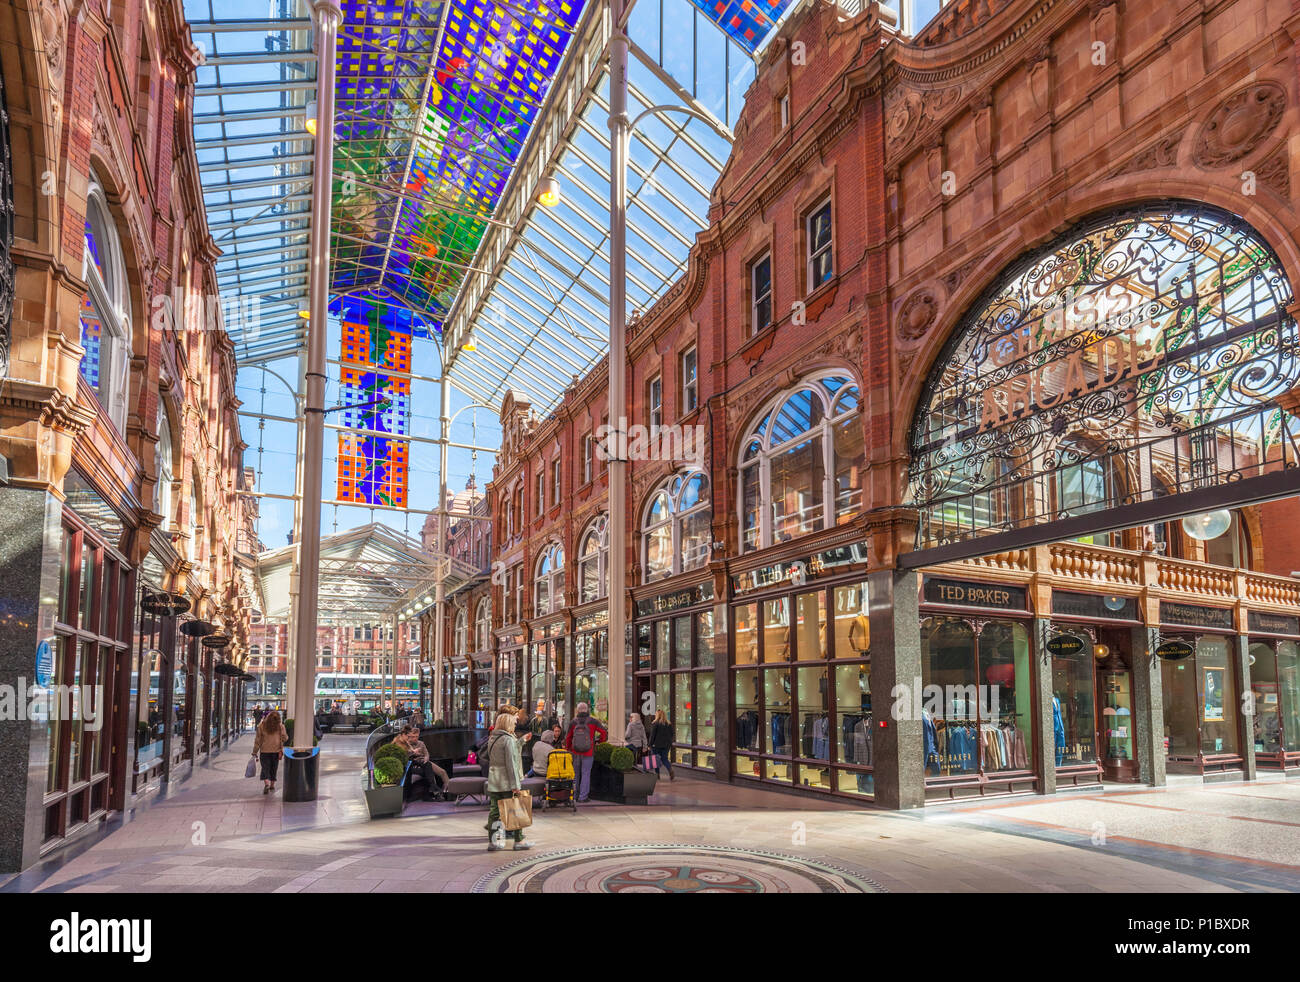 yorkshire england leeds yorkshire england junction of cross arcade and county arcade leeds victoria quarter leeds city centre shopping briggate leeds - Stock Image